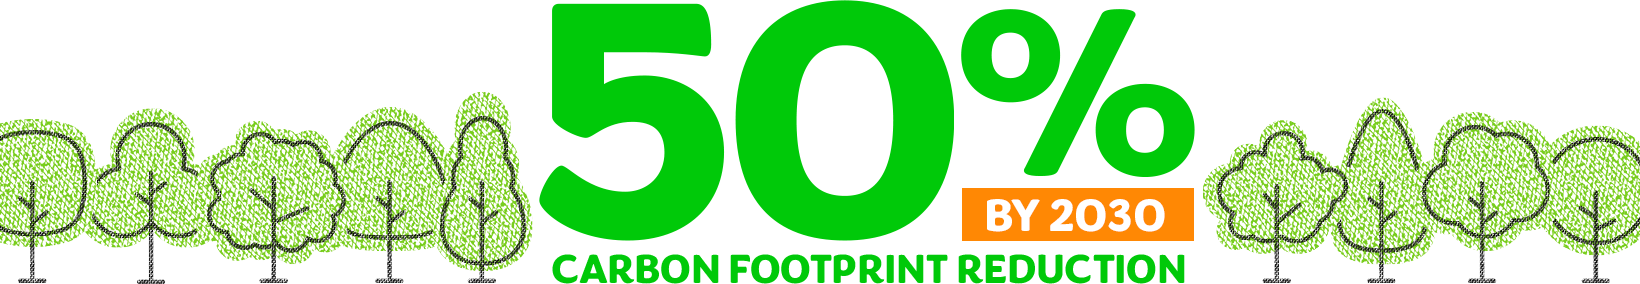 50% carbon footprint reduction by 2030.